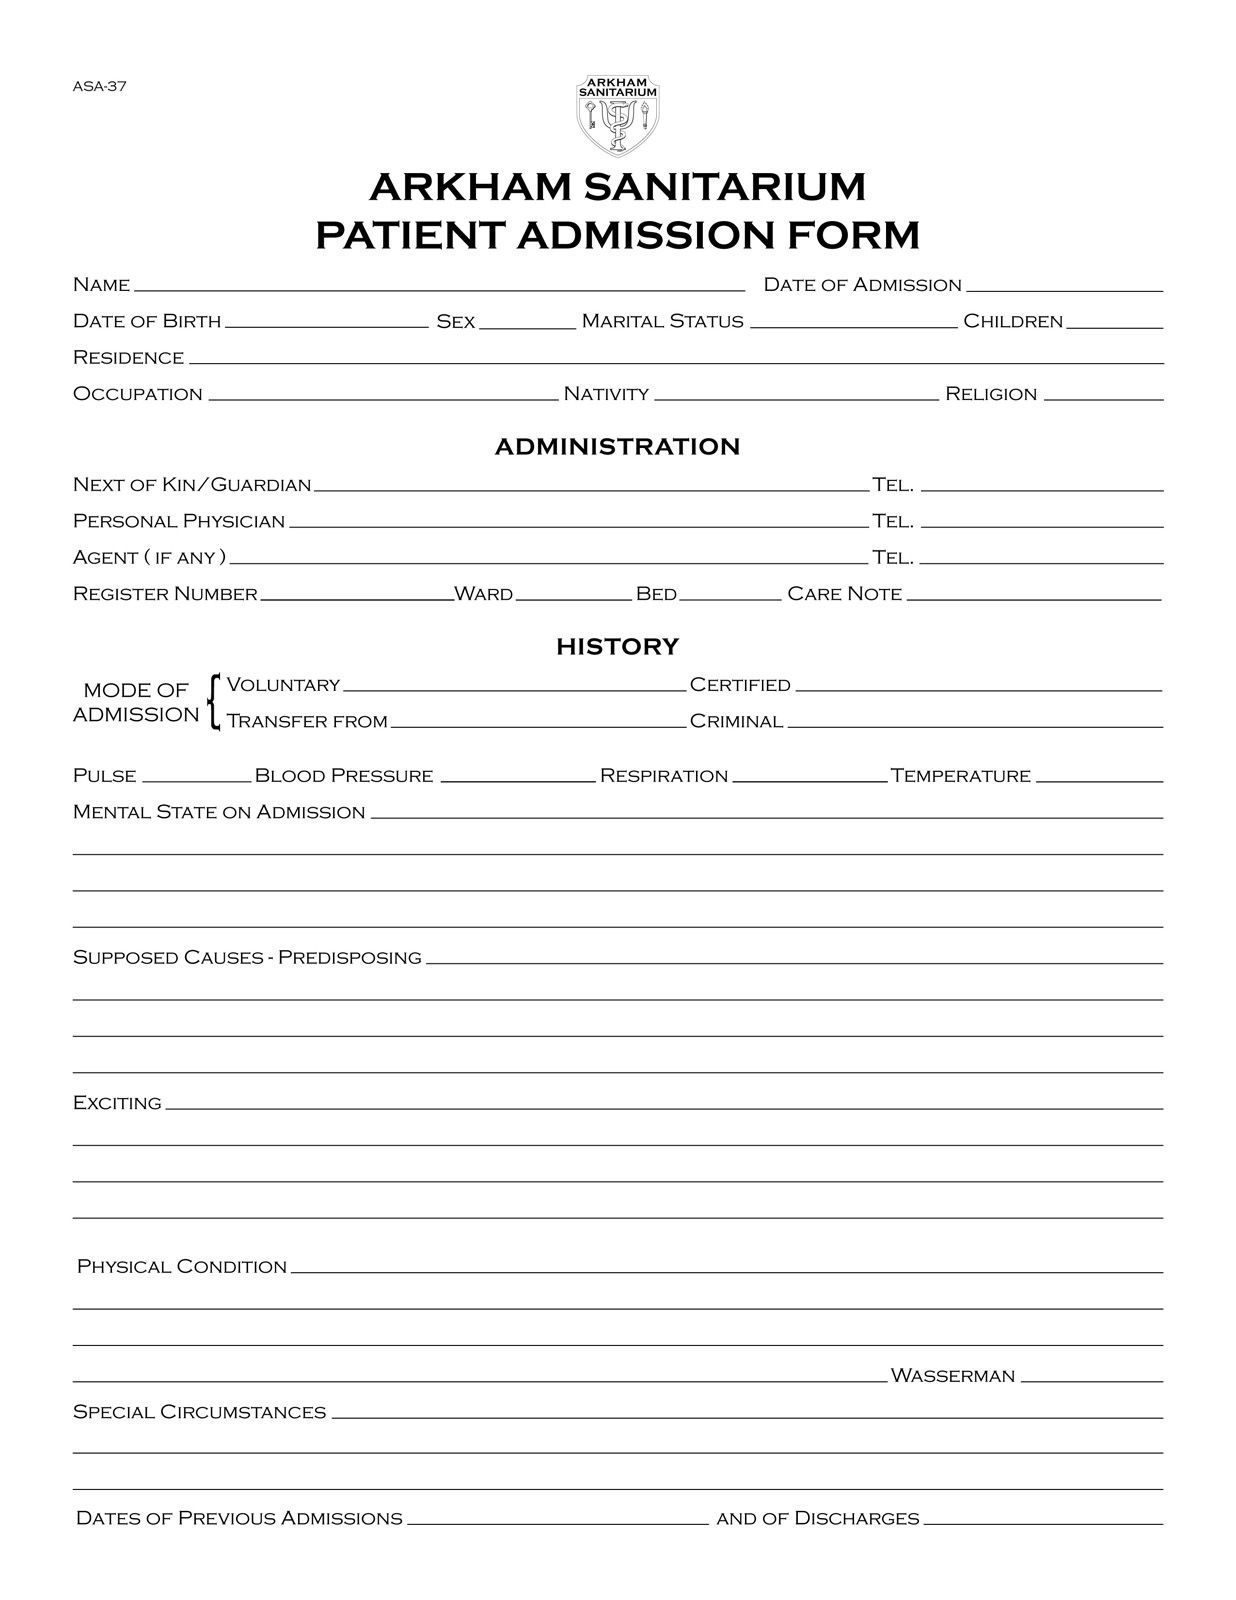 Wonderful Another Prop Document From The Arkham Sanitarium Project, This Is A Basic Admission  Form Covering The Patientu0027s Personal Information, Admini. Ideas Hospital Admission Form Template